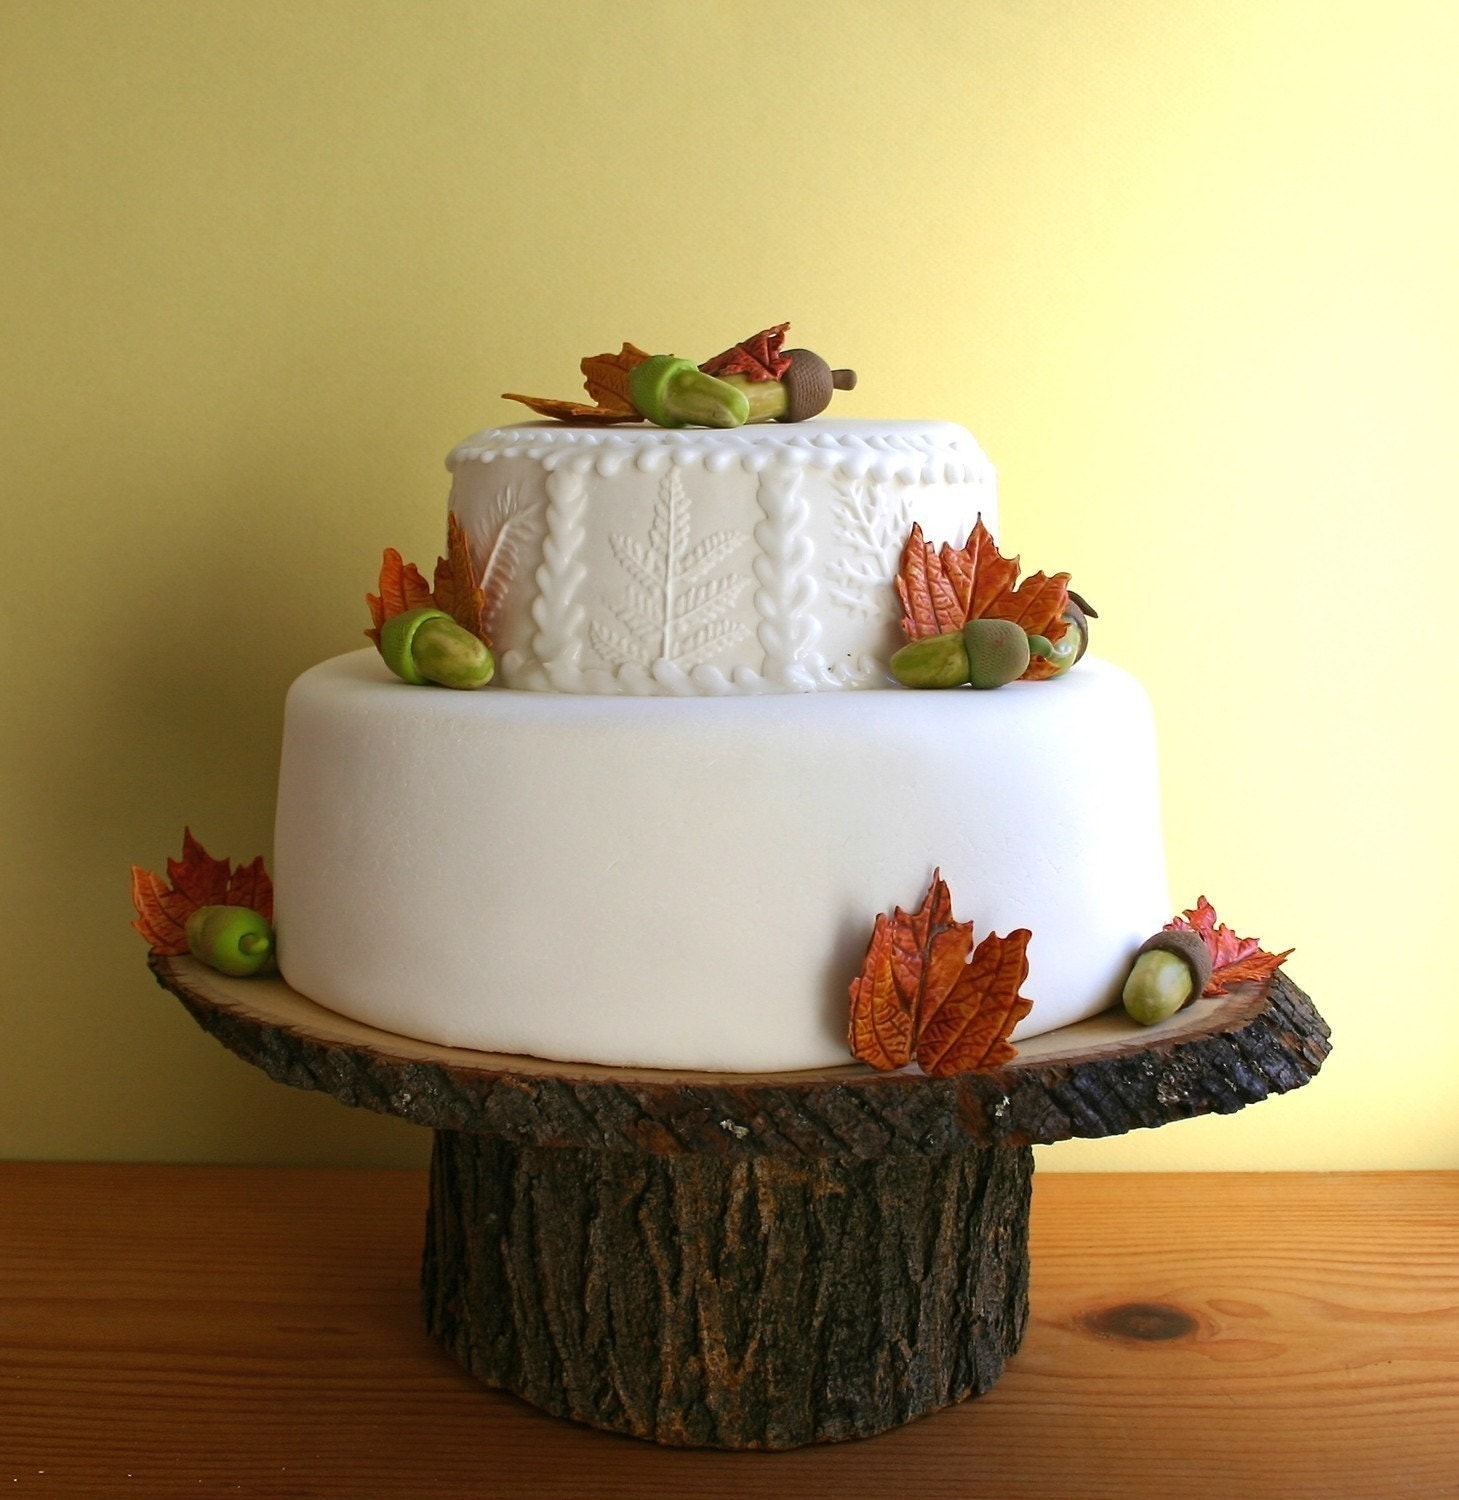 Rustic Wedding Wood Cake Stand: 12 X 16 Rustic Wood Cake Stand